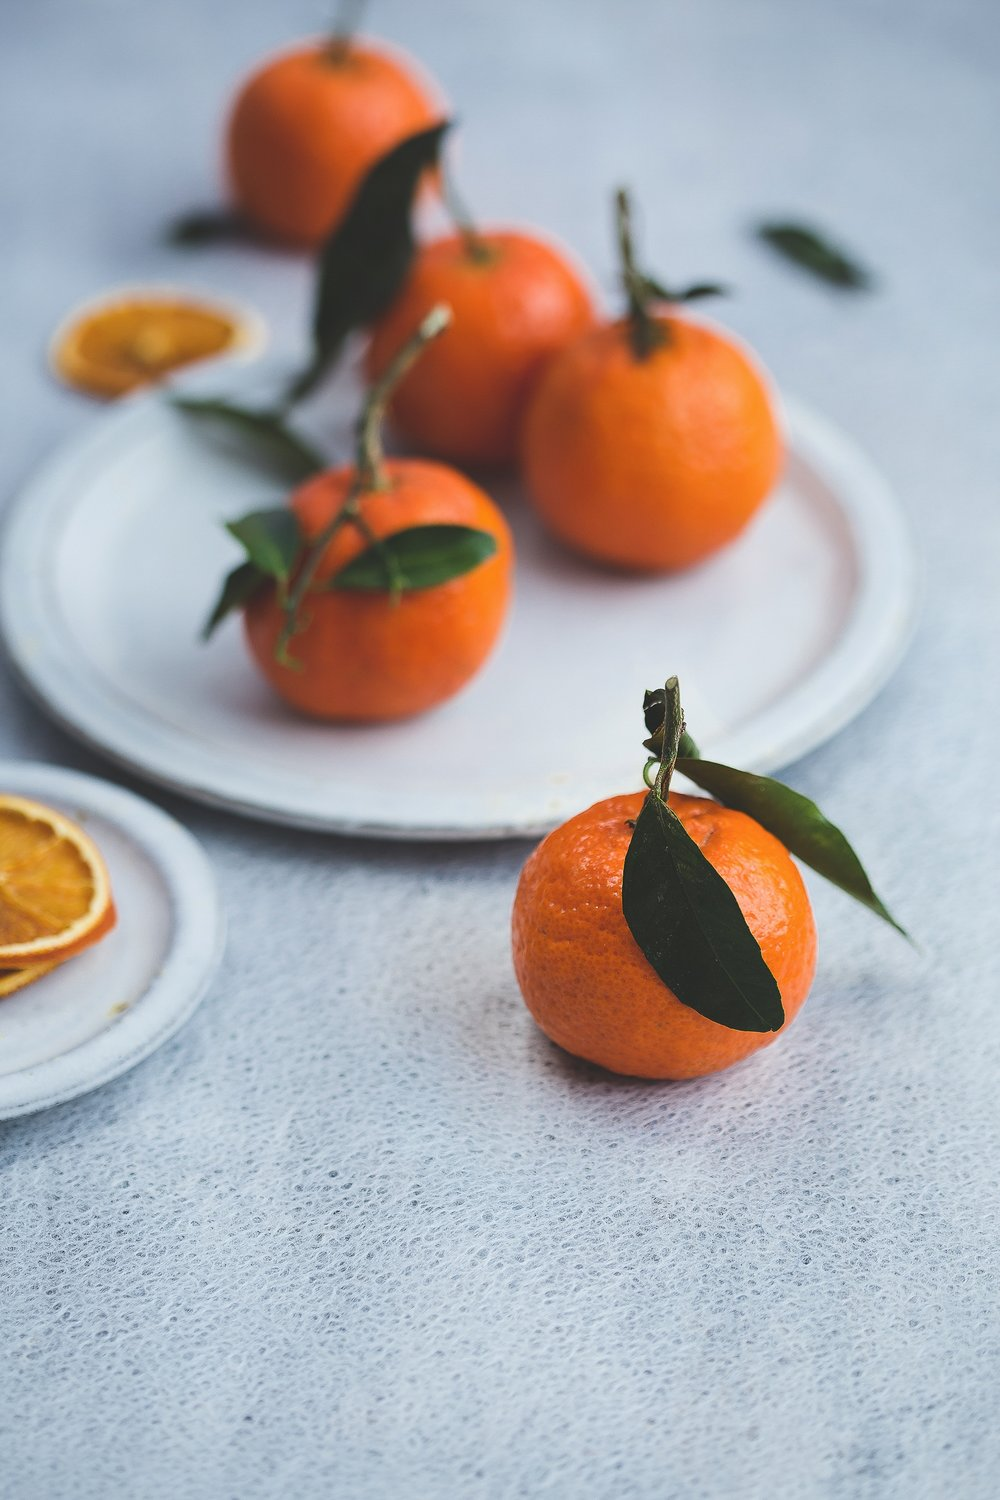 Oranges have vitamin C, flavonoids and beta-carotene to help boost the immune system, fight the flu and reduce the effects of aging. -